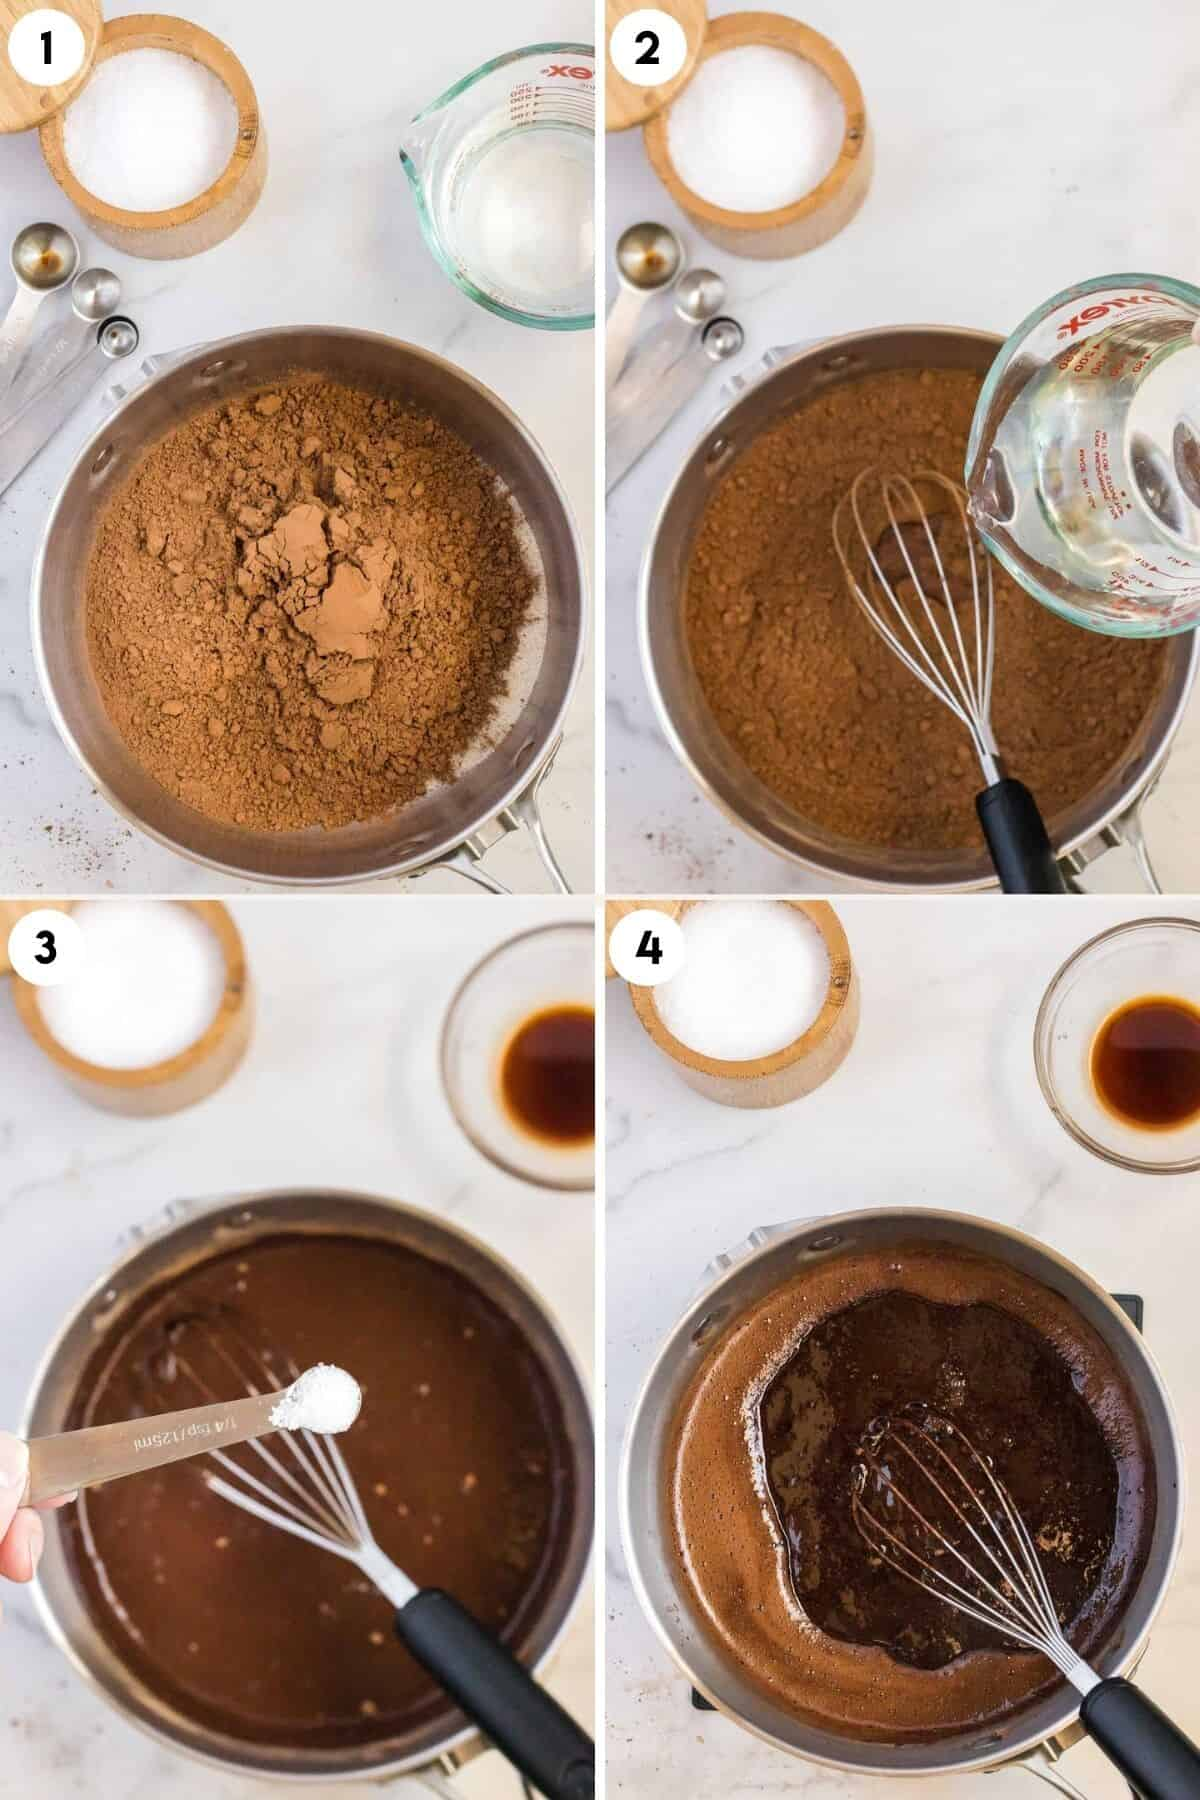 steps 1-4 of making chocolate syrup